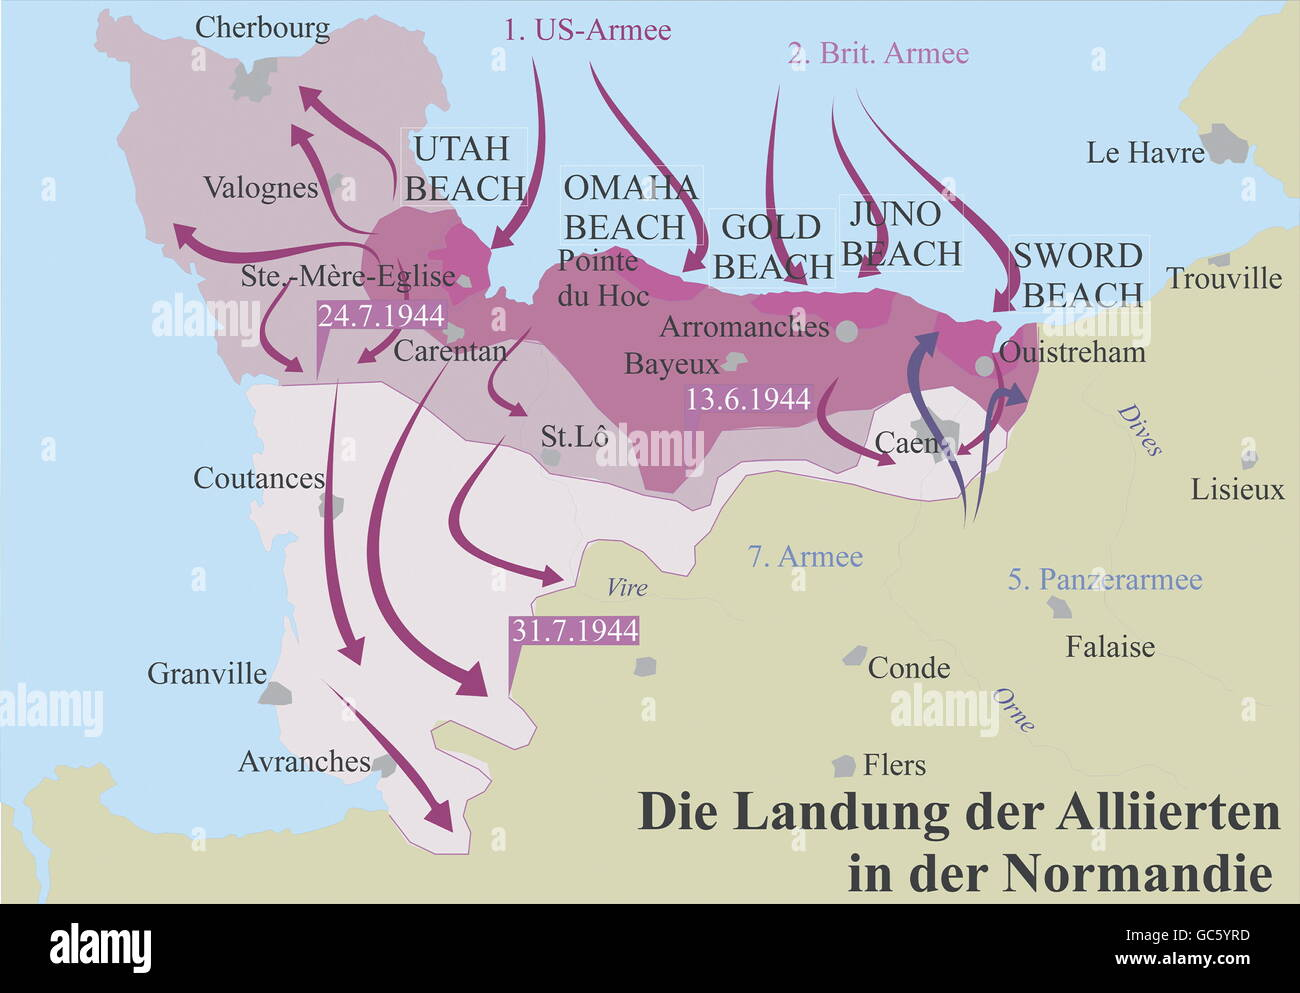 Wwii Map Stock Photos & Wwii Map Stock Images - Alamy